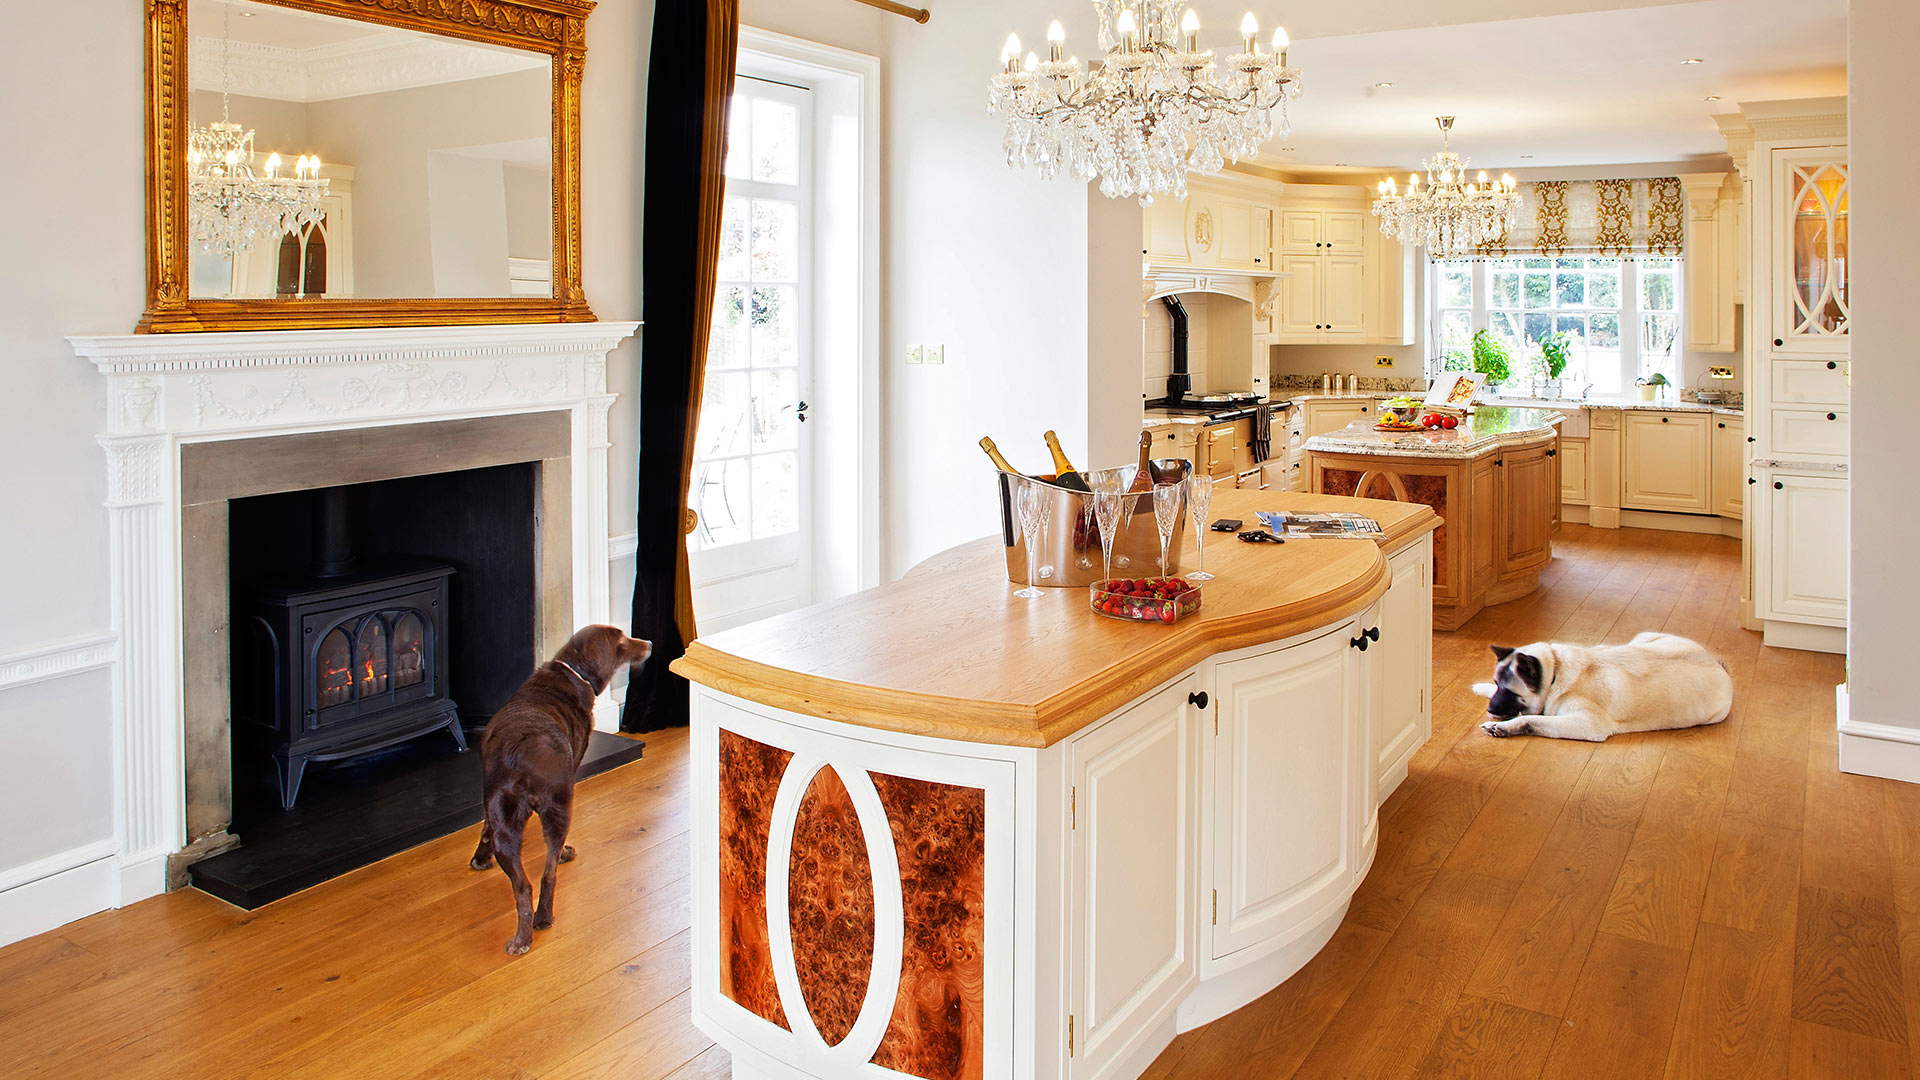 Broadway bespoke kitchens